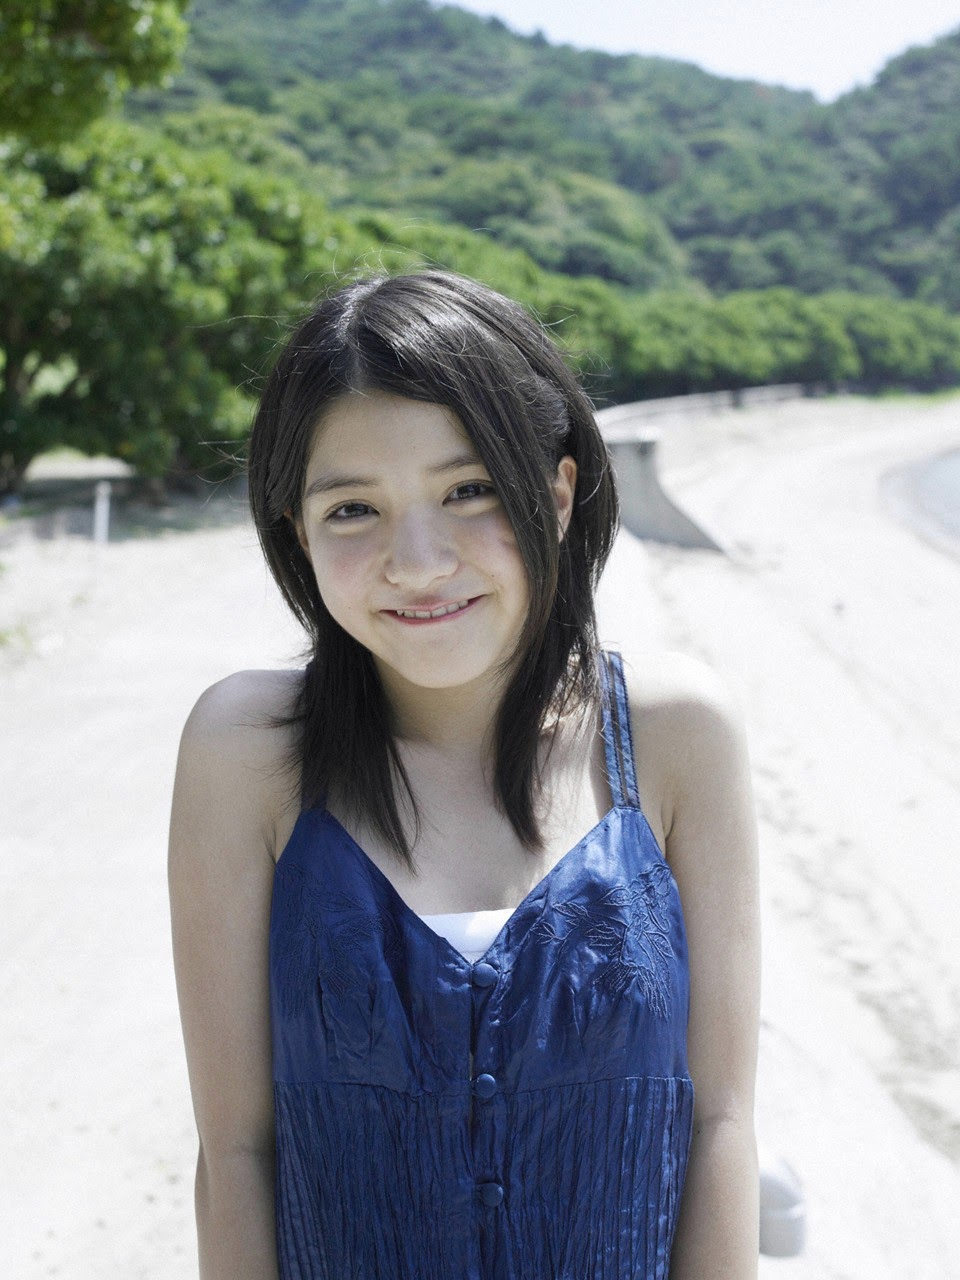 Umi chans smile explodes on some southern island157